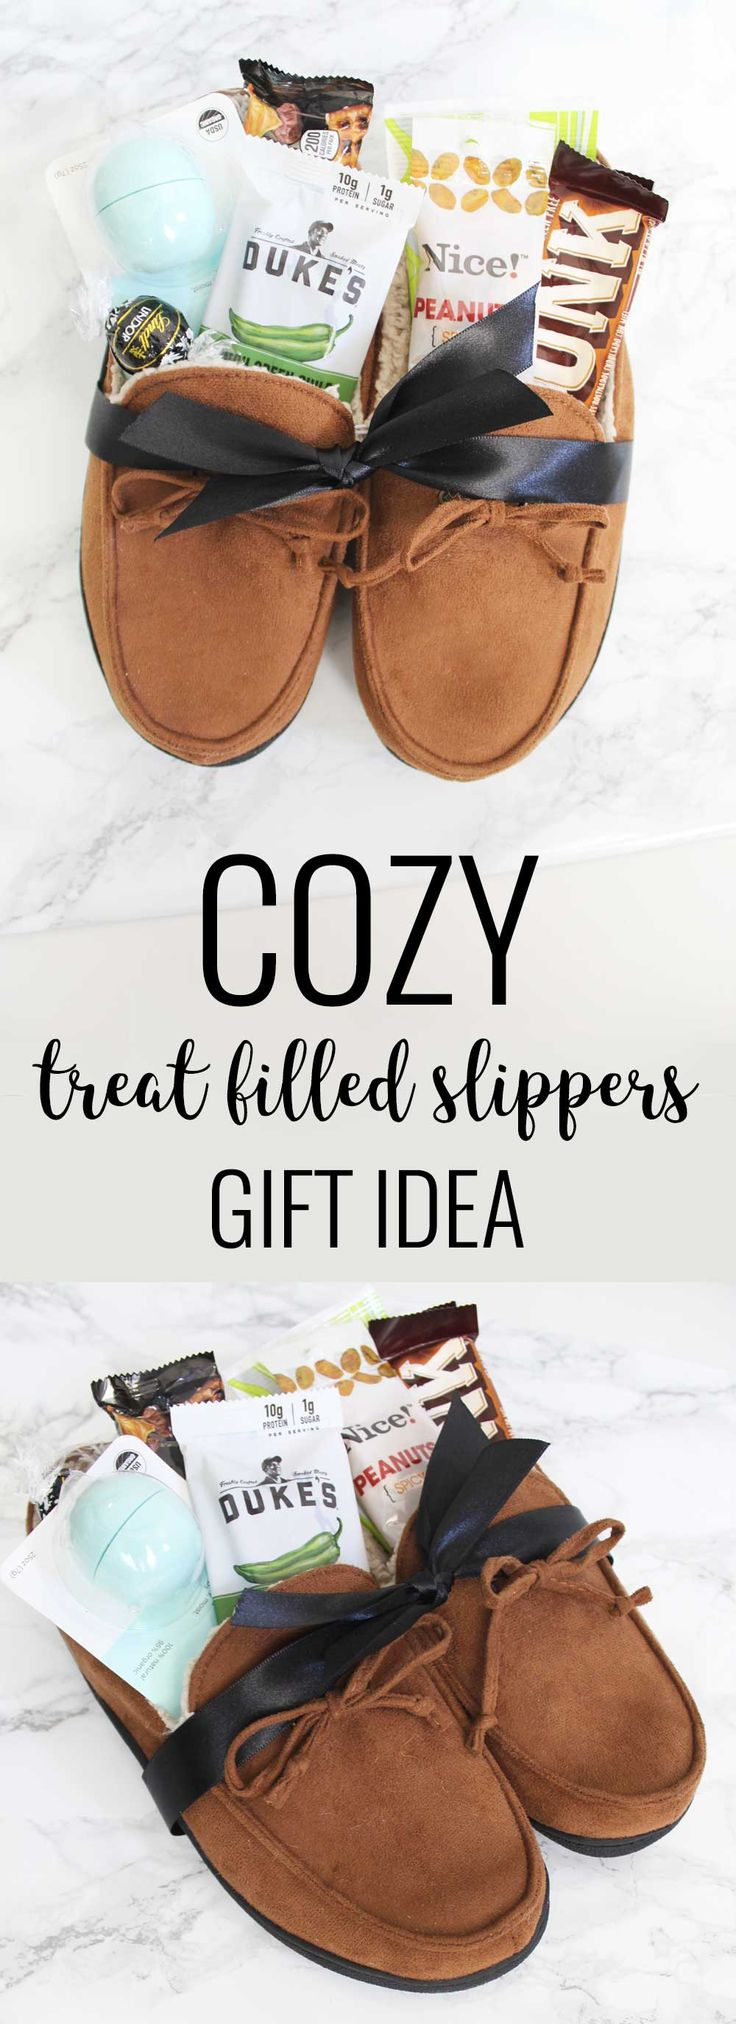 208 best Father\'s Day images on Pinterest | Father\'s day gifts ...